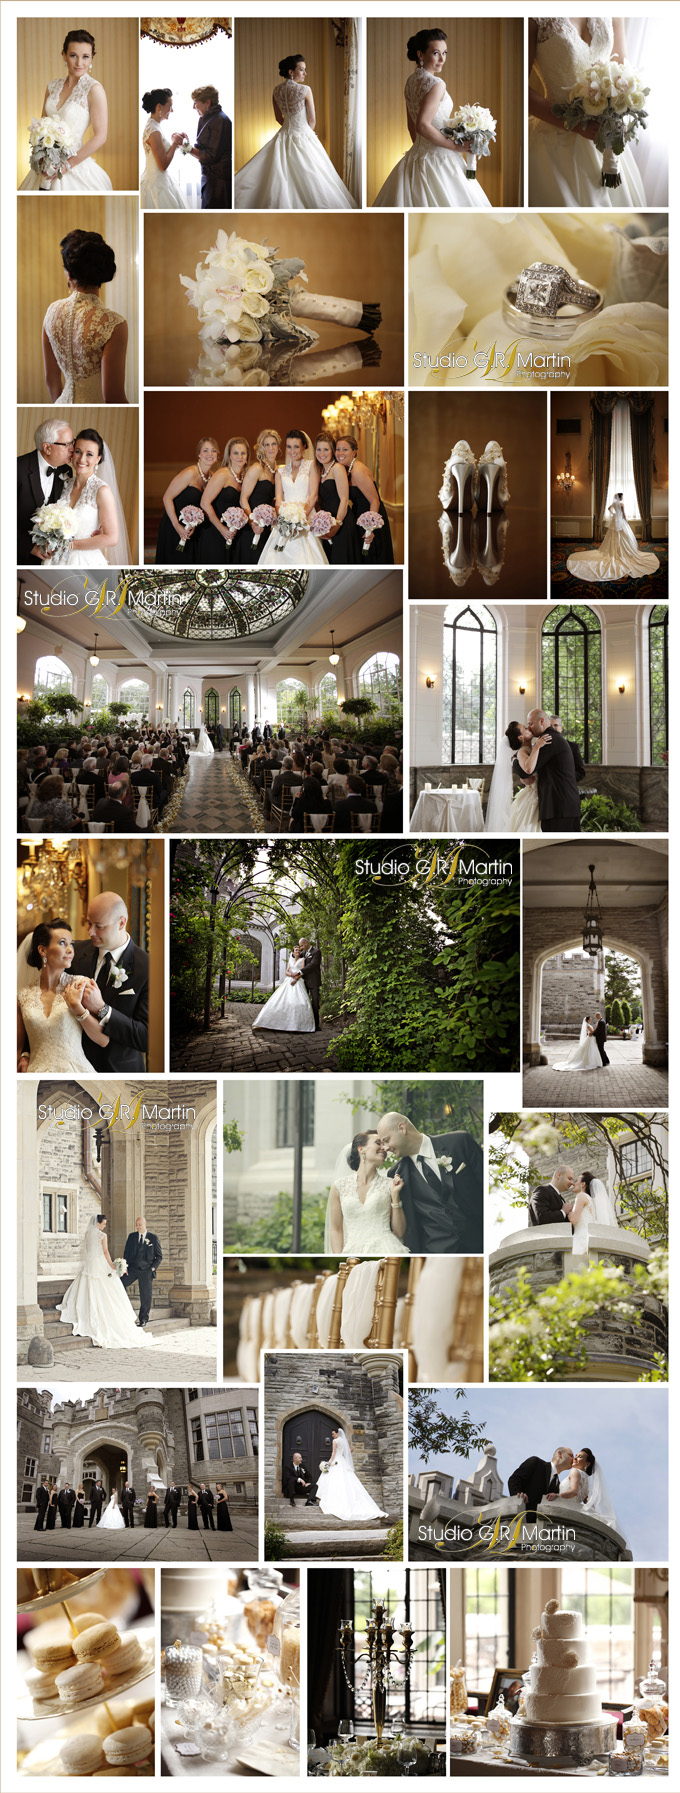 Casa Loma Weddings Studio G.R. Martin Photography Amy and Michael